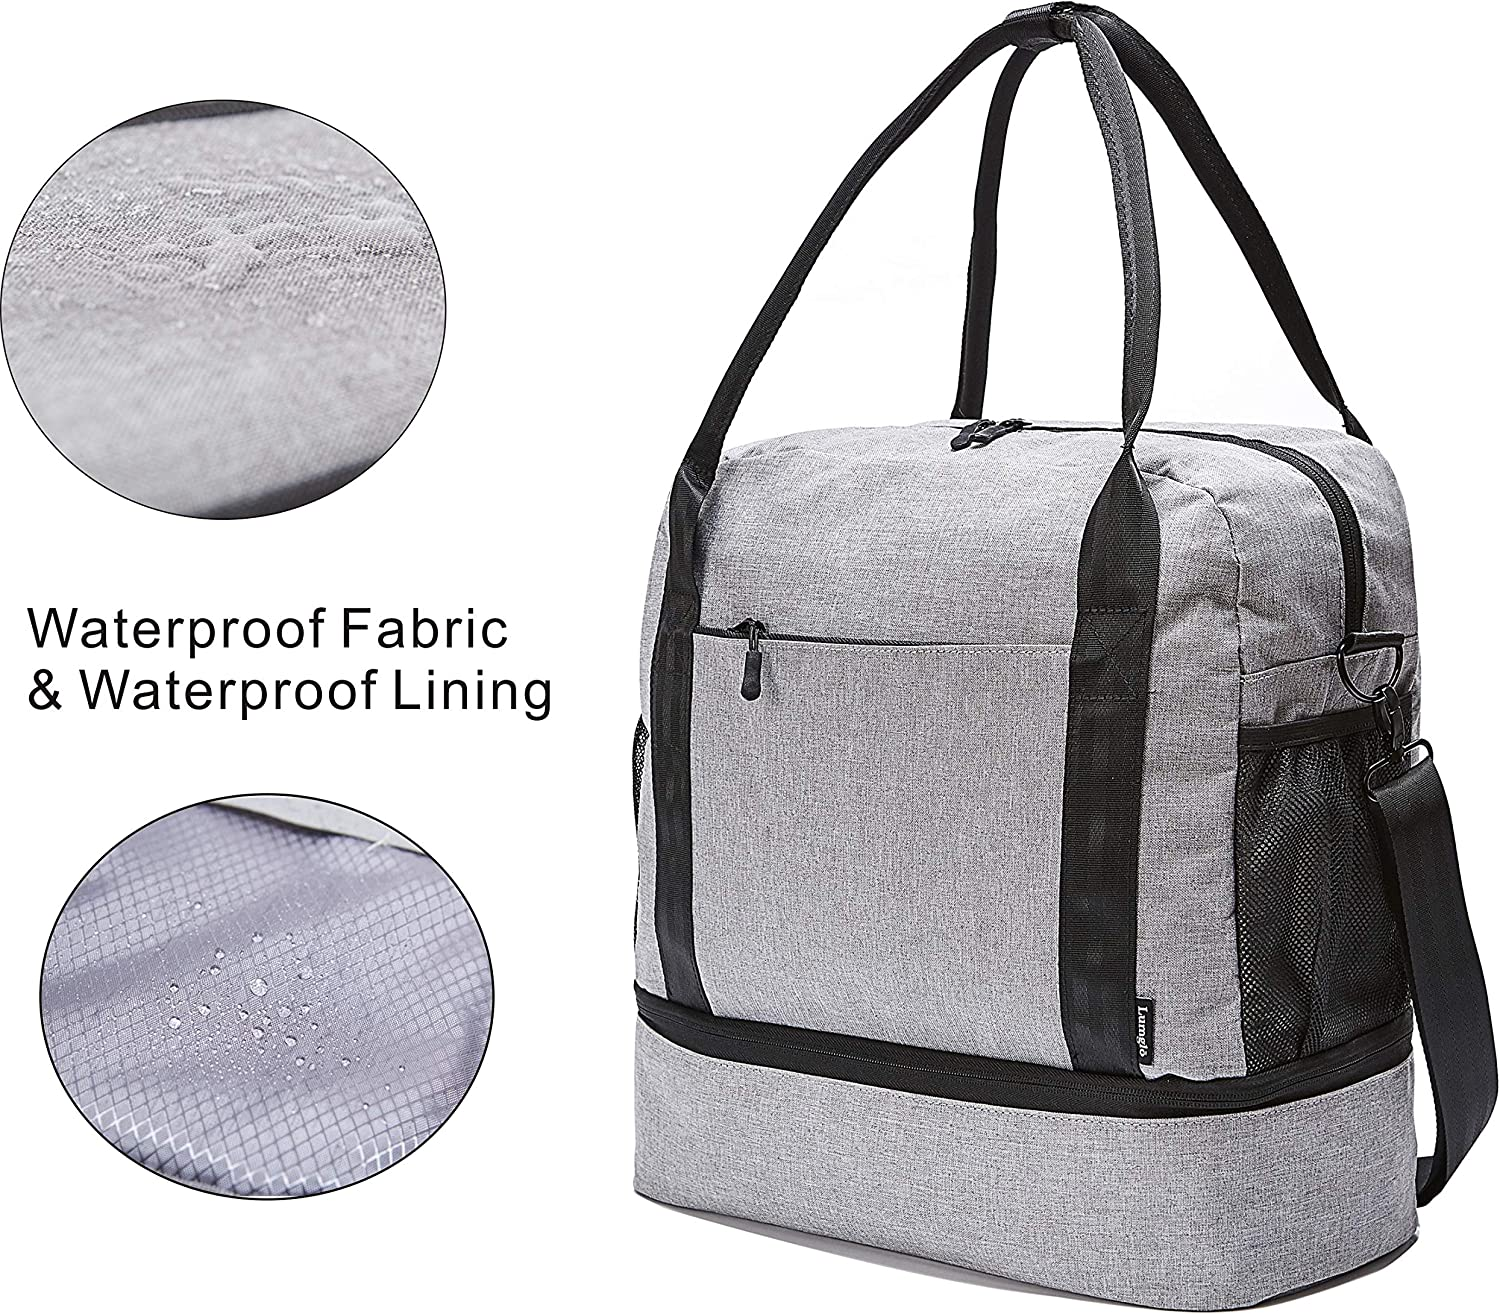 Slides over Luggage handle Carry-on Tote Duffel Bag with Bottom Compartment